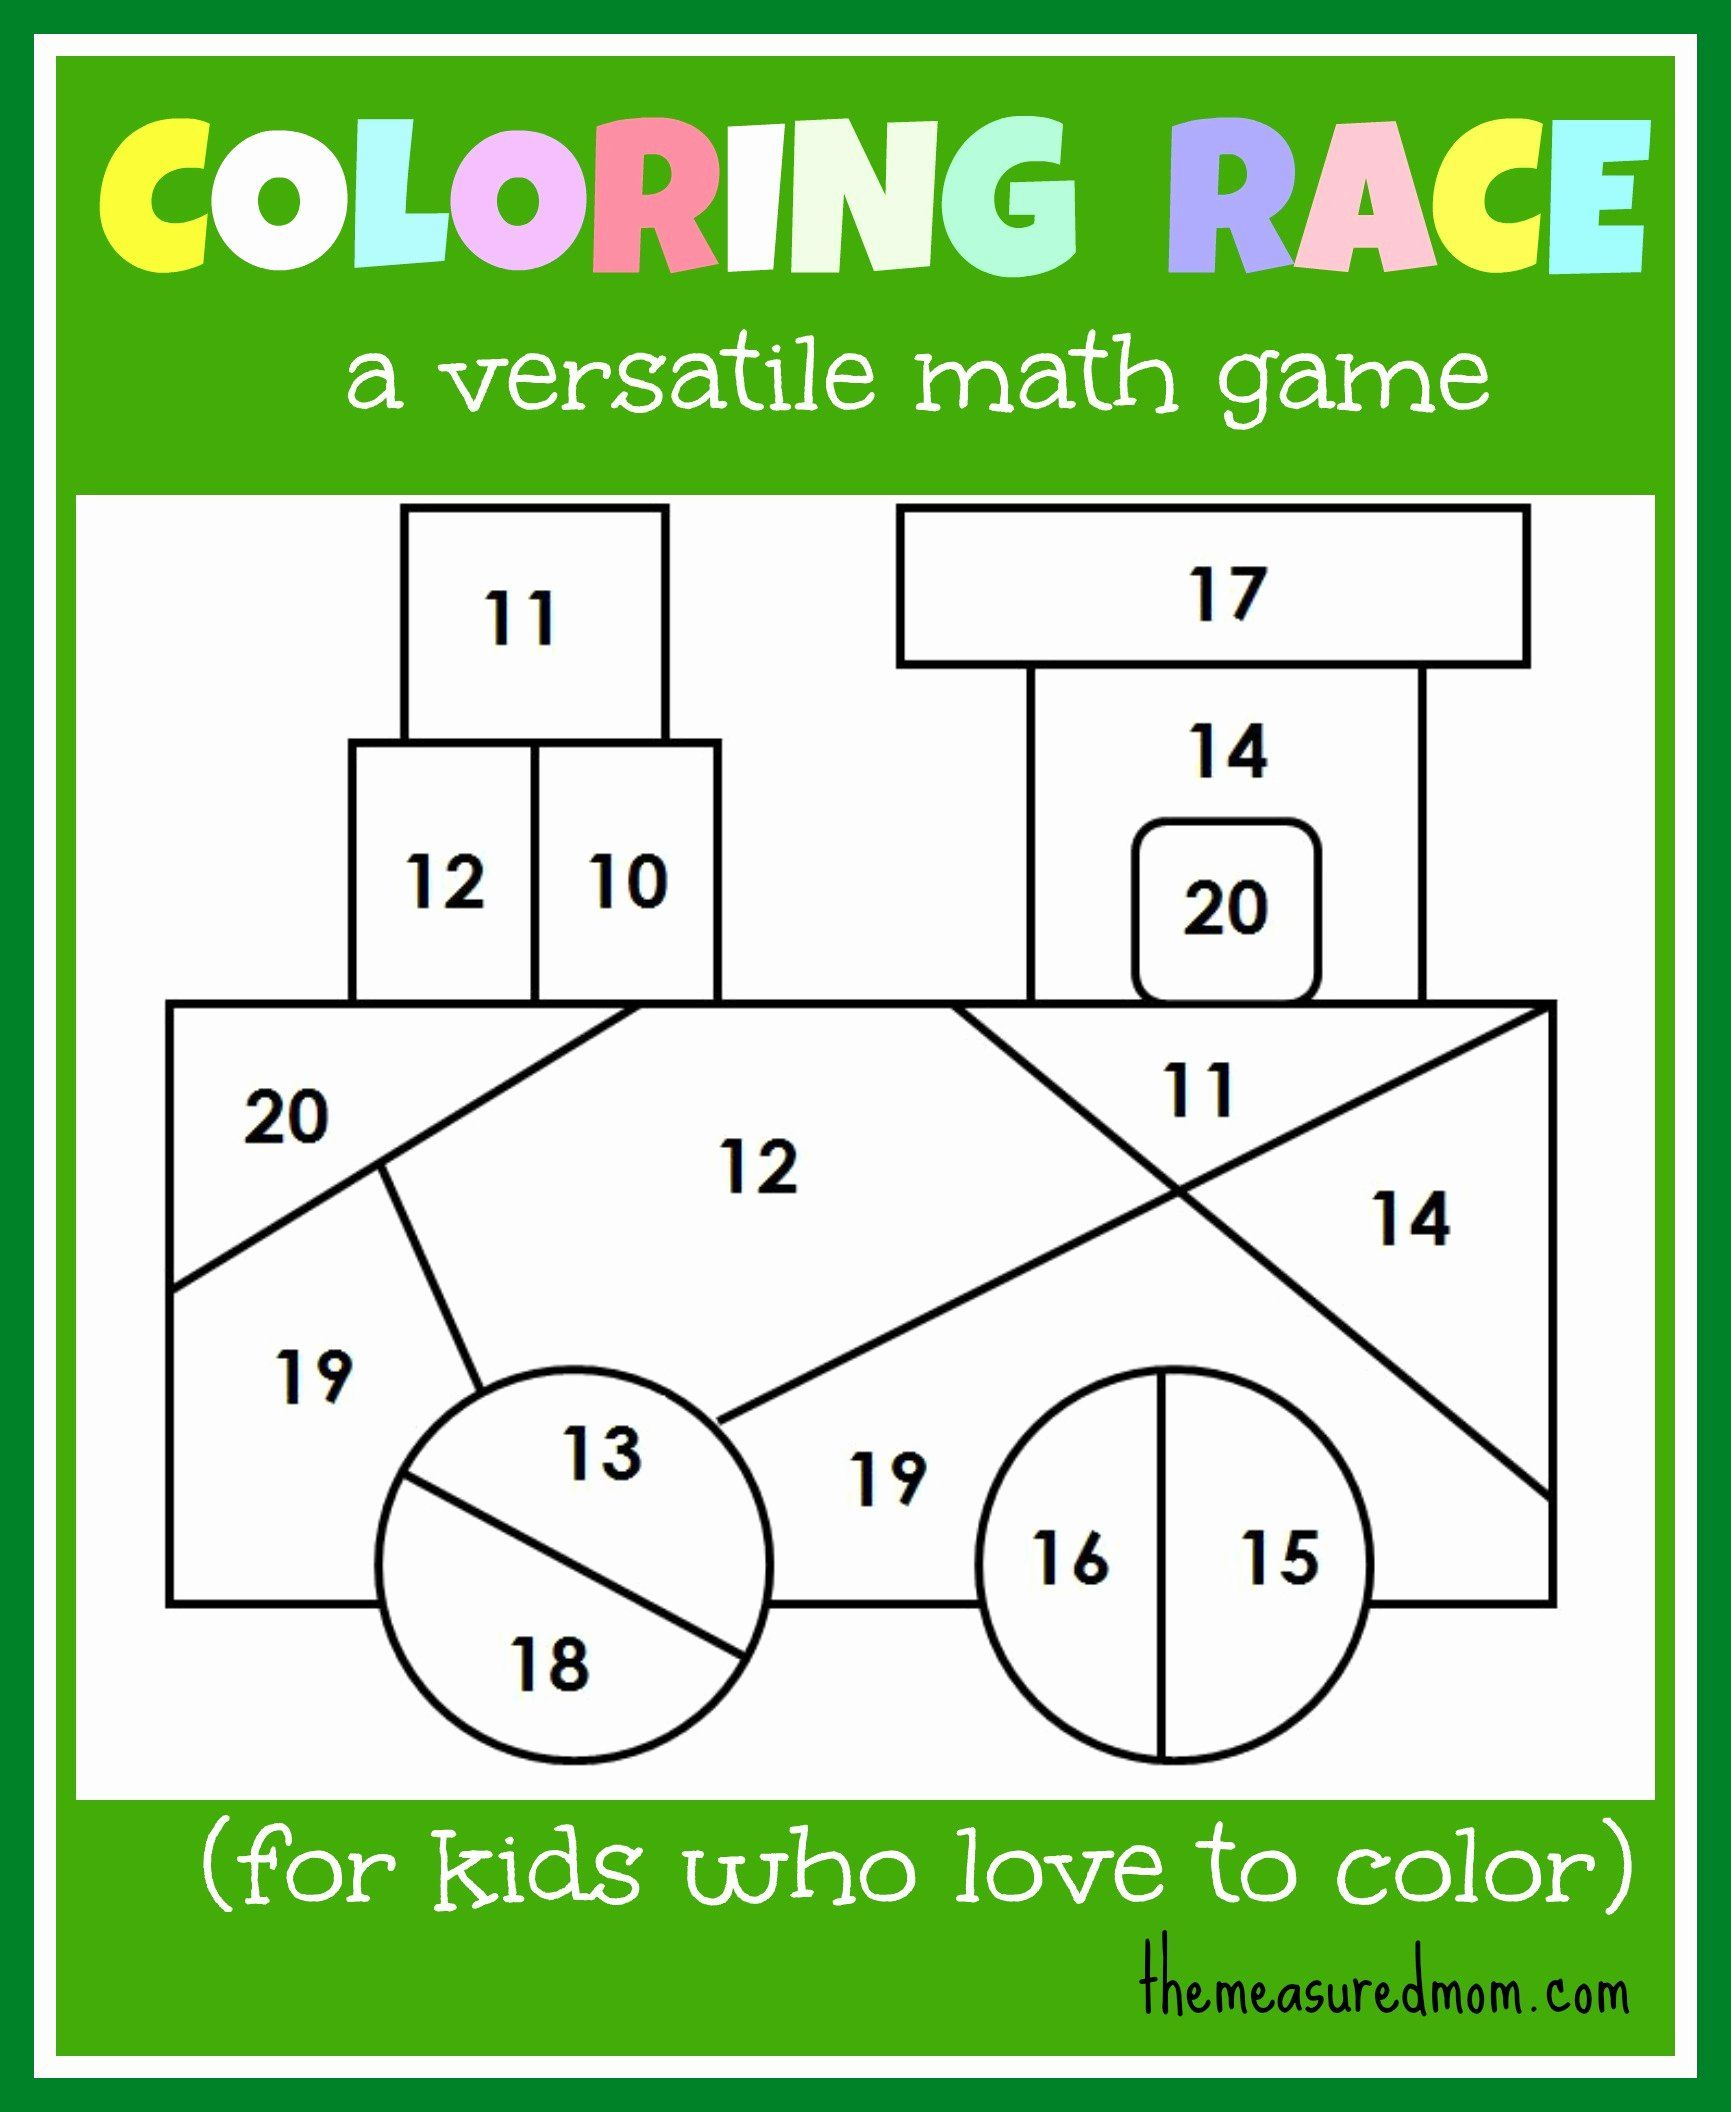 Space Coloring Pages For Toddlers Unique Math Game For